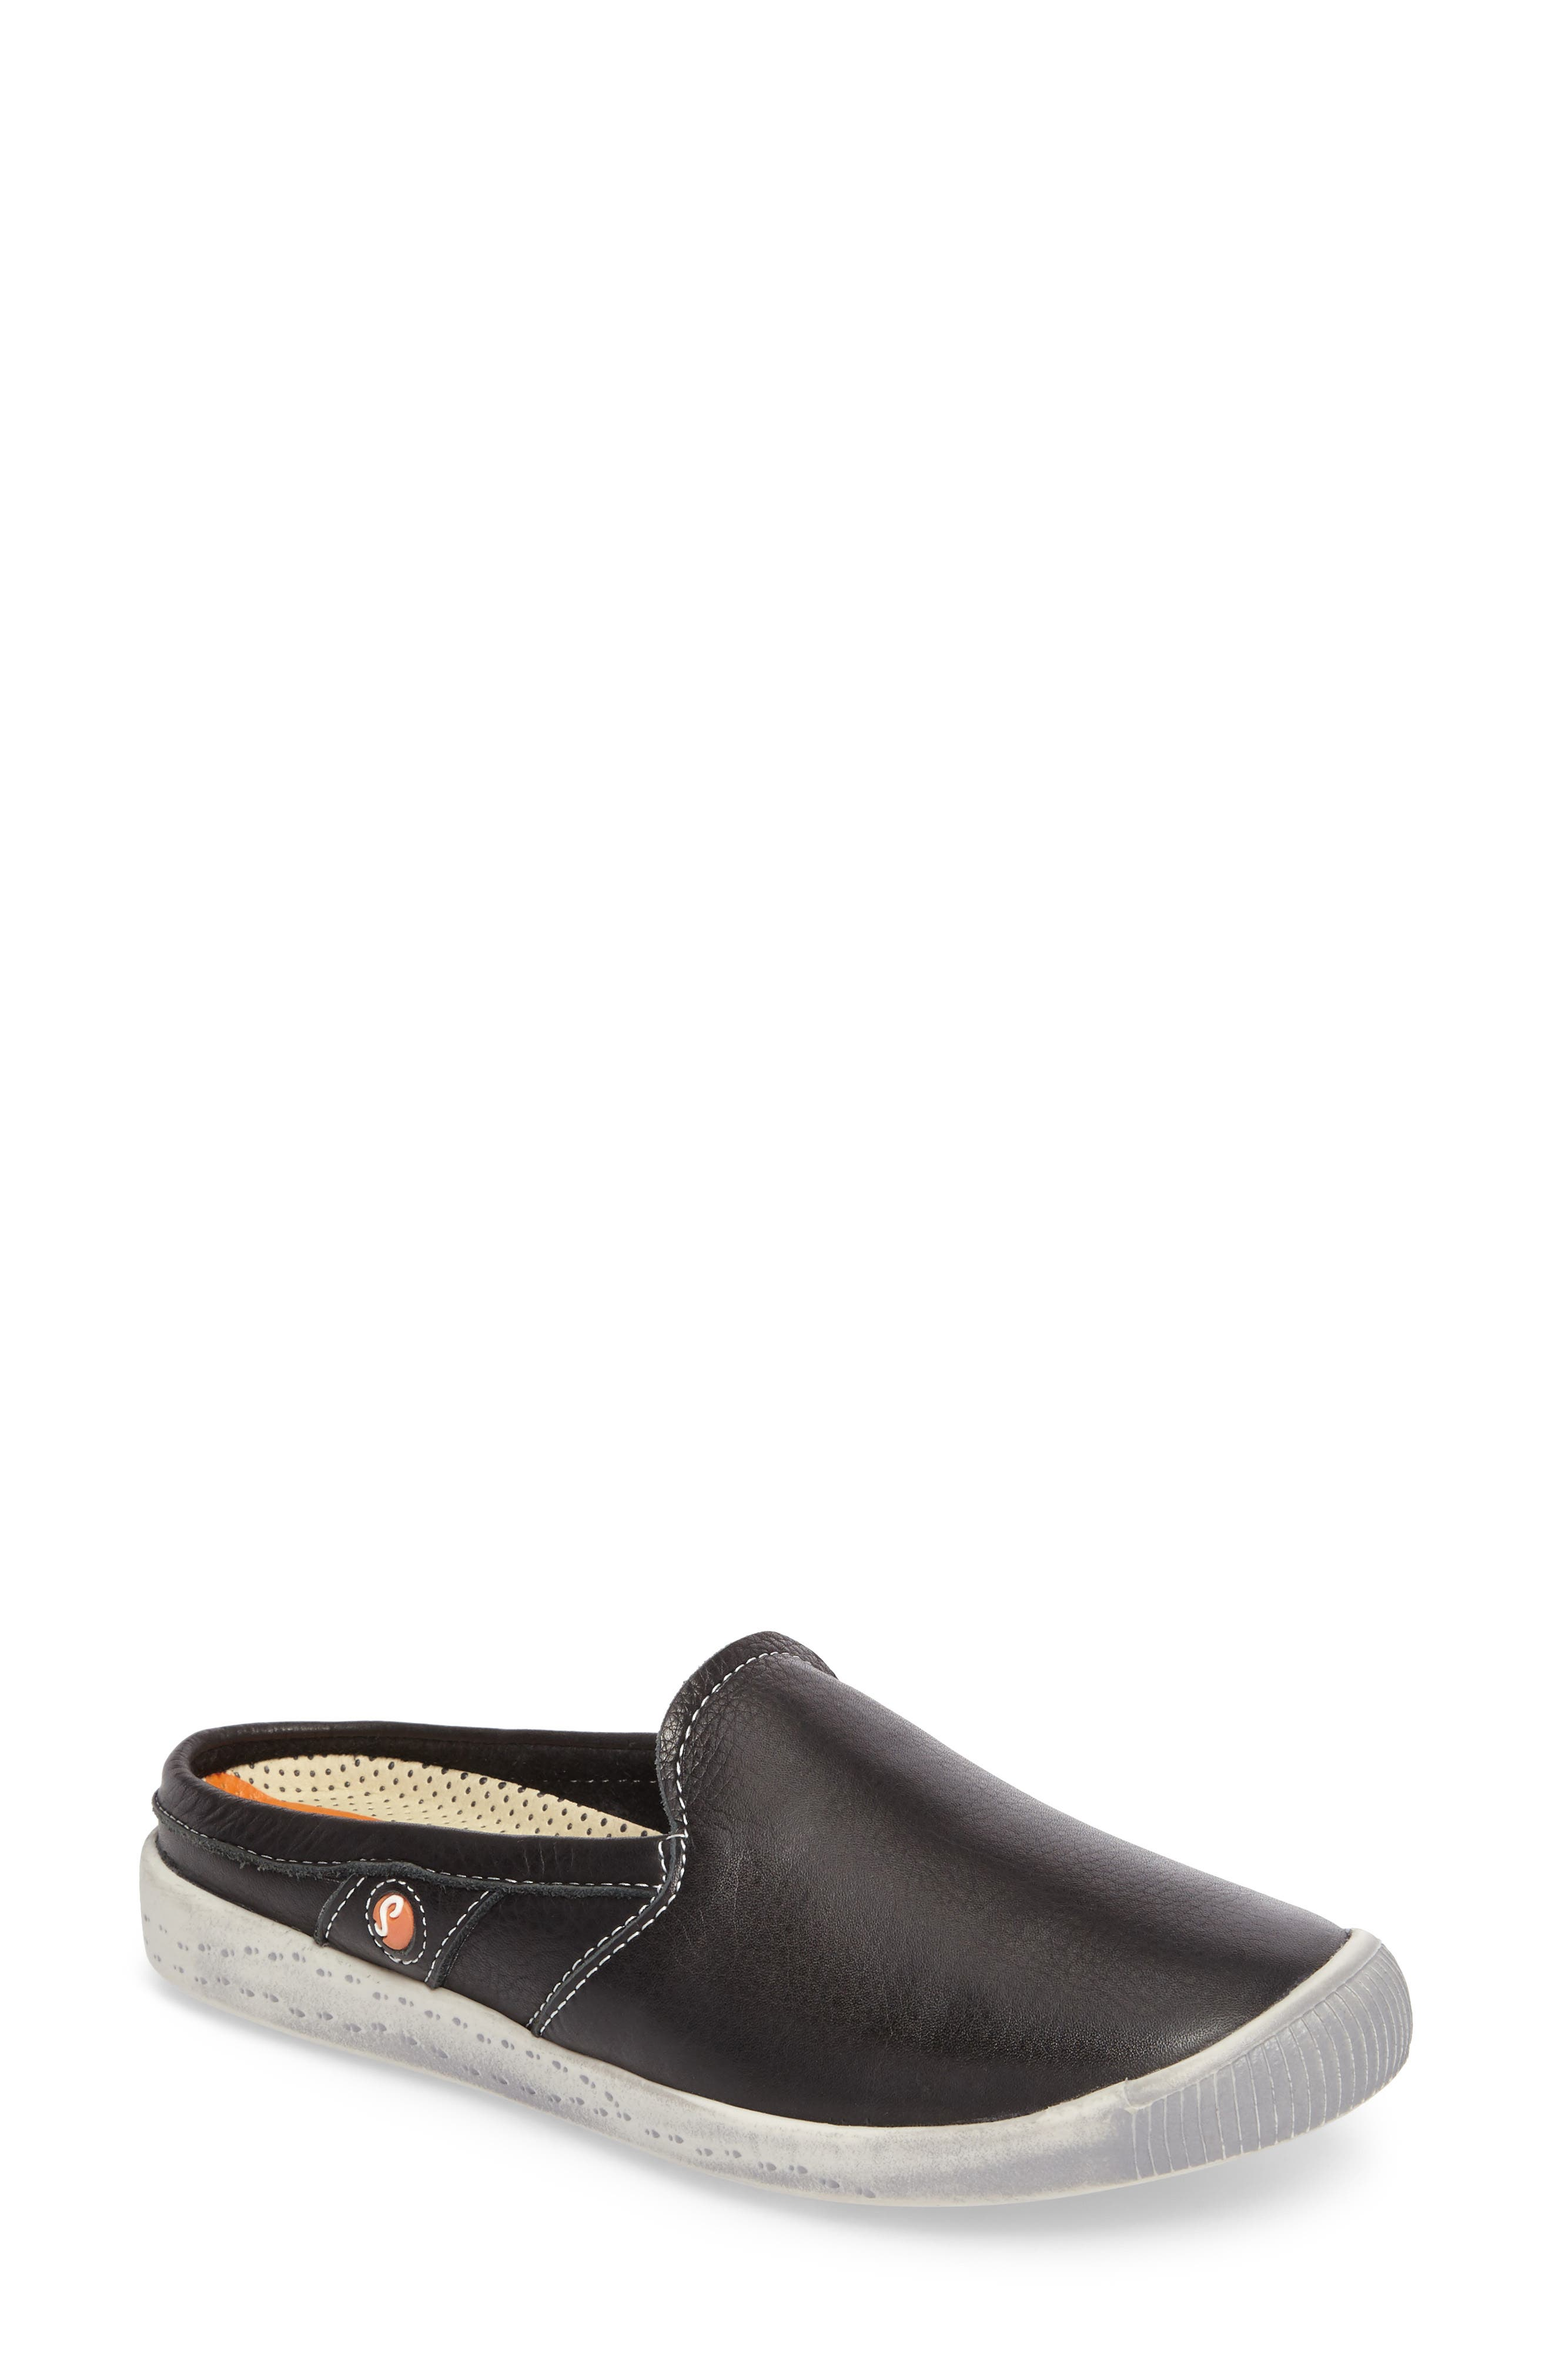 Alternate Image 1 Selected - Softinos by Fly London Imo Sneaker Mule (Women)